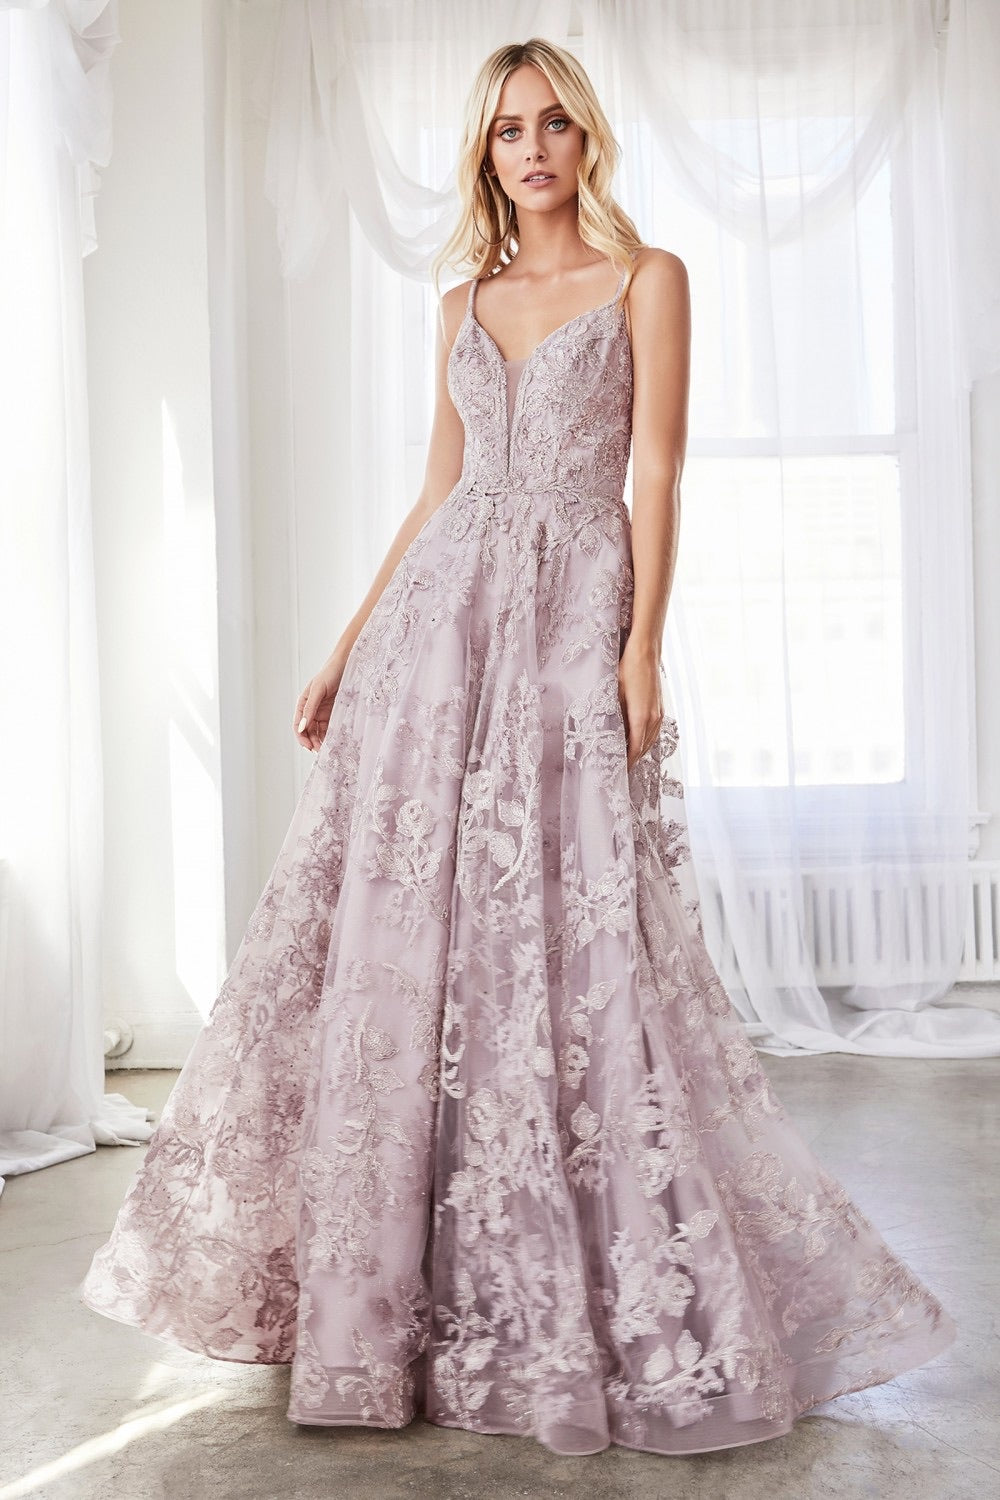 CD Mauve Blossom Gown